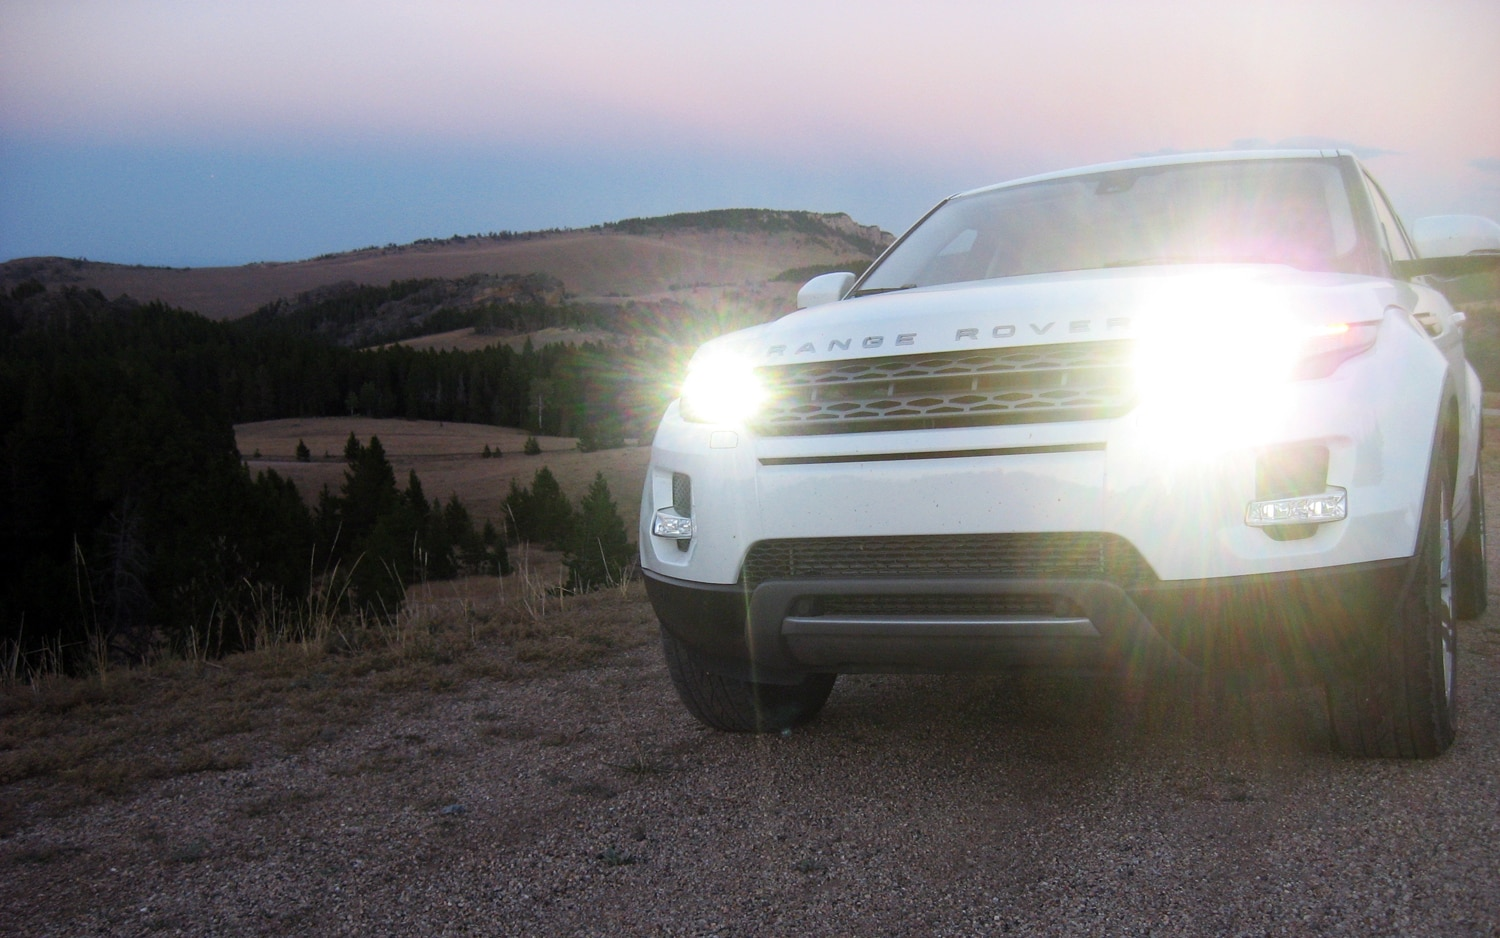 2012 Land Rover Range Rover Evoque Headlights1